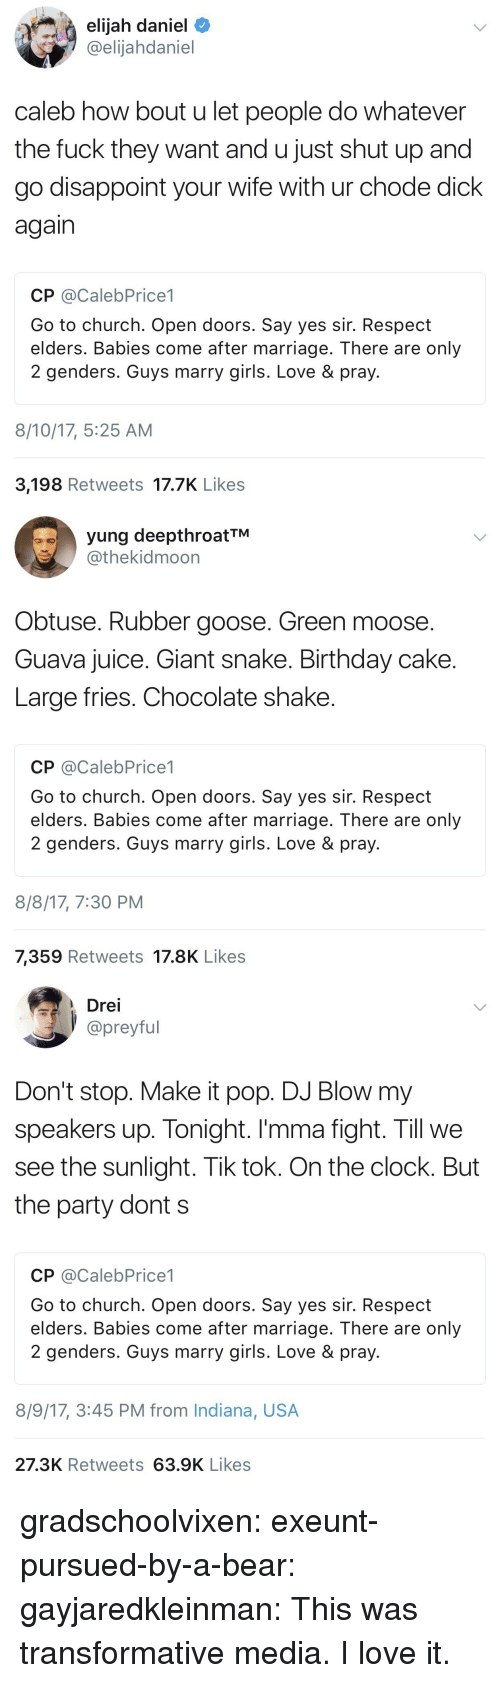 Large Fries Chocolate Shake: elijah daniel  @elijahdaniel  caleb how bout u let people do whatever  the fuck they want and u just shut up and  go disappoint your wife with ur chode dick  again  CP @CalebPrice1  Go to church. Open doors. Say yes sir. Respect  elders. Babies come after marriage. There are only  2 genders. Guys marry girls. Love & pray.  8/10/17, 5:25 AM  3,198 Retweets 17.7K Like:s   yung deepthroatTM  @thekidmoon  Obtuse. Rubber goose. Green moose.  Guava juice. Giant snake. Birthday cake  Large fries. Chocolate shake  CP @CalebPrice1  Go to church. Open doors. Say yes sir. Respect  elders. Babies come after marriage. There are only  2 genders. Guys marry girls. Love & pray  8/8/17, 7:30 PM  7,359 Retweets 17.8K Likes   Drei  preyful  Don't stop. Make it pop. DJ Blow my  speakers up. Tonight. I'mma fight. Till we  see the sunlight. Tik tok. On the clock. But  the party dont s  CP @CalebPrice1  Go to church. Open doors. Say yes sir. Respect  elders. Babies come after marriage. There are only  2 genders. Guys marry girls. Love& pray  8/9/17, 3:45 PM from Indiana, USA  27.3K Retweets 63.9K Likes gradschoolvixen:  exeunt-pursued-by-a-bear:  gayjaredkleinman:    This was transformative media. I love it.